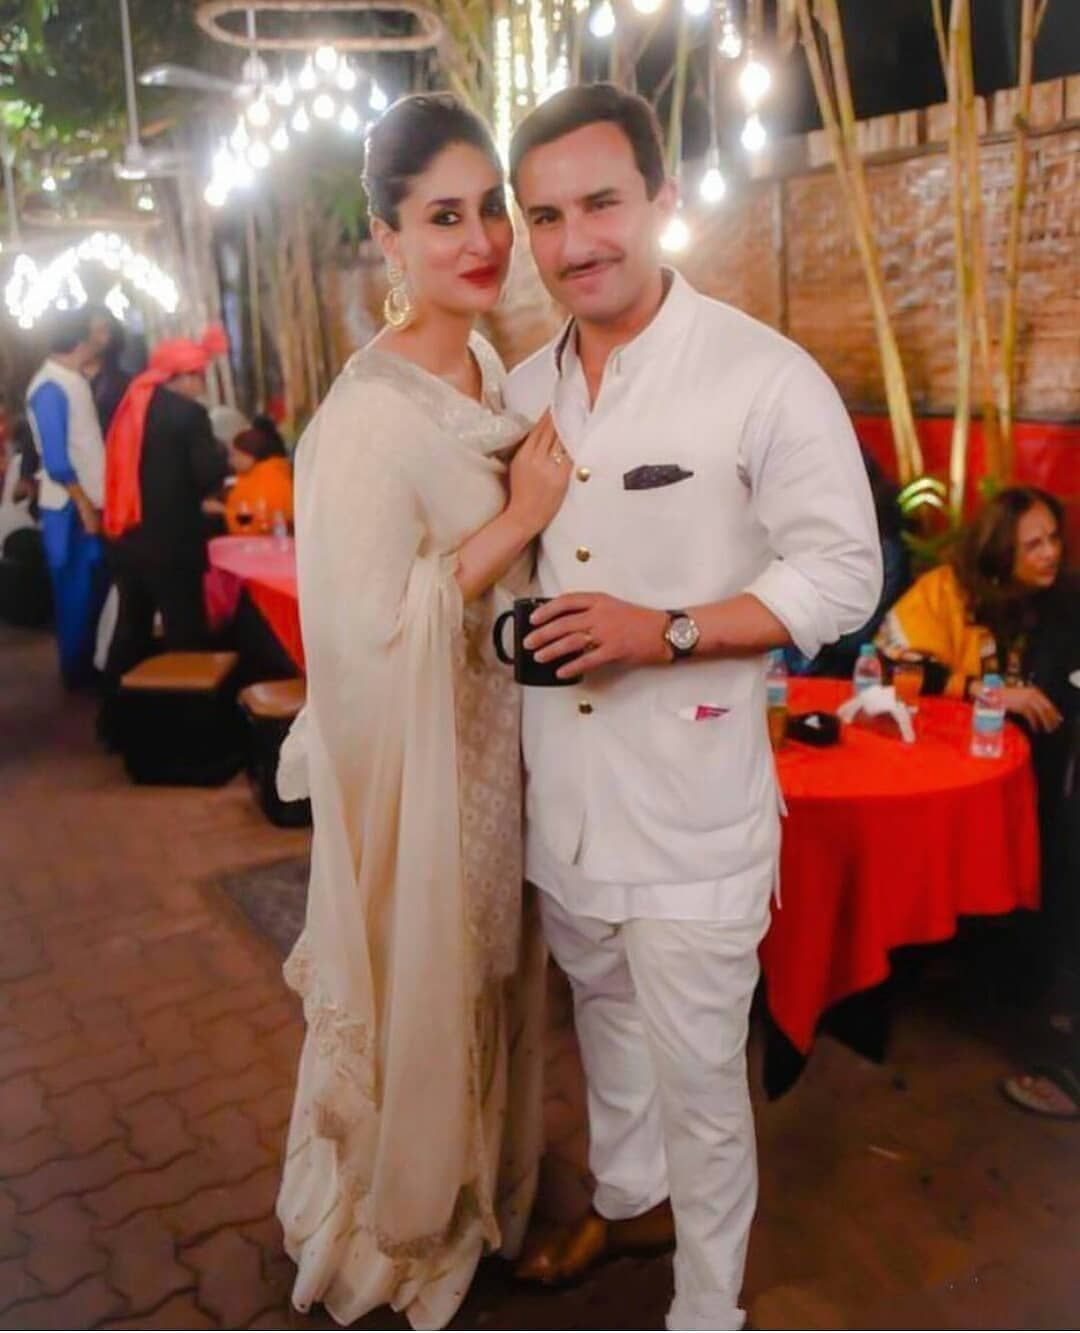 Saif Ali Khan Kareena Kapoor Khan Together Happily Married Bollywood Celebrities Kareena Kapoor Pics Bollywood Couples